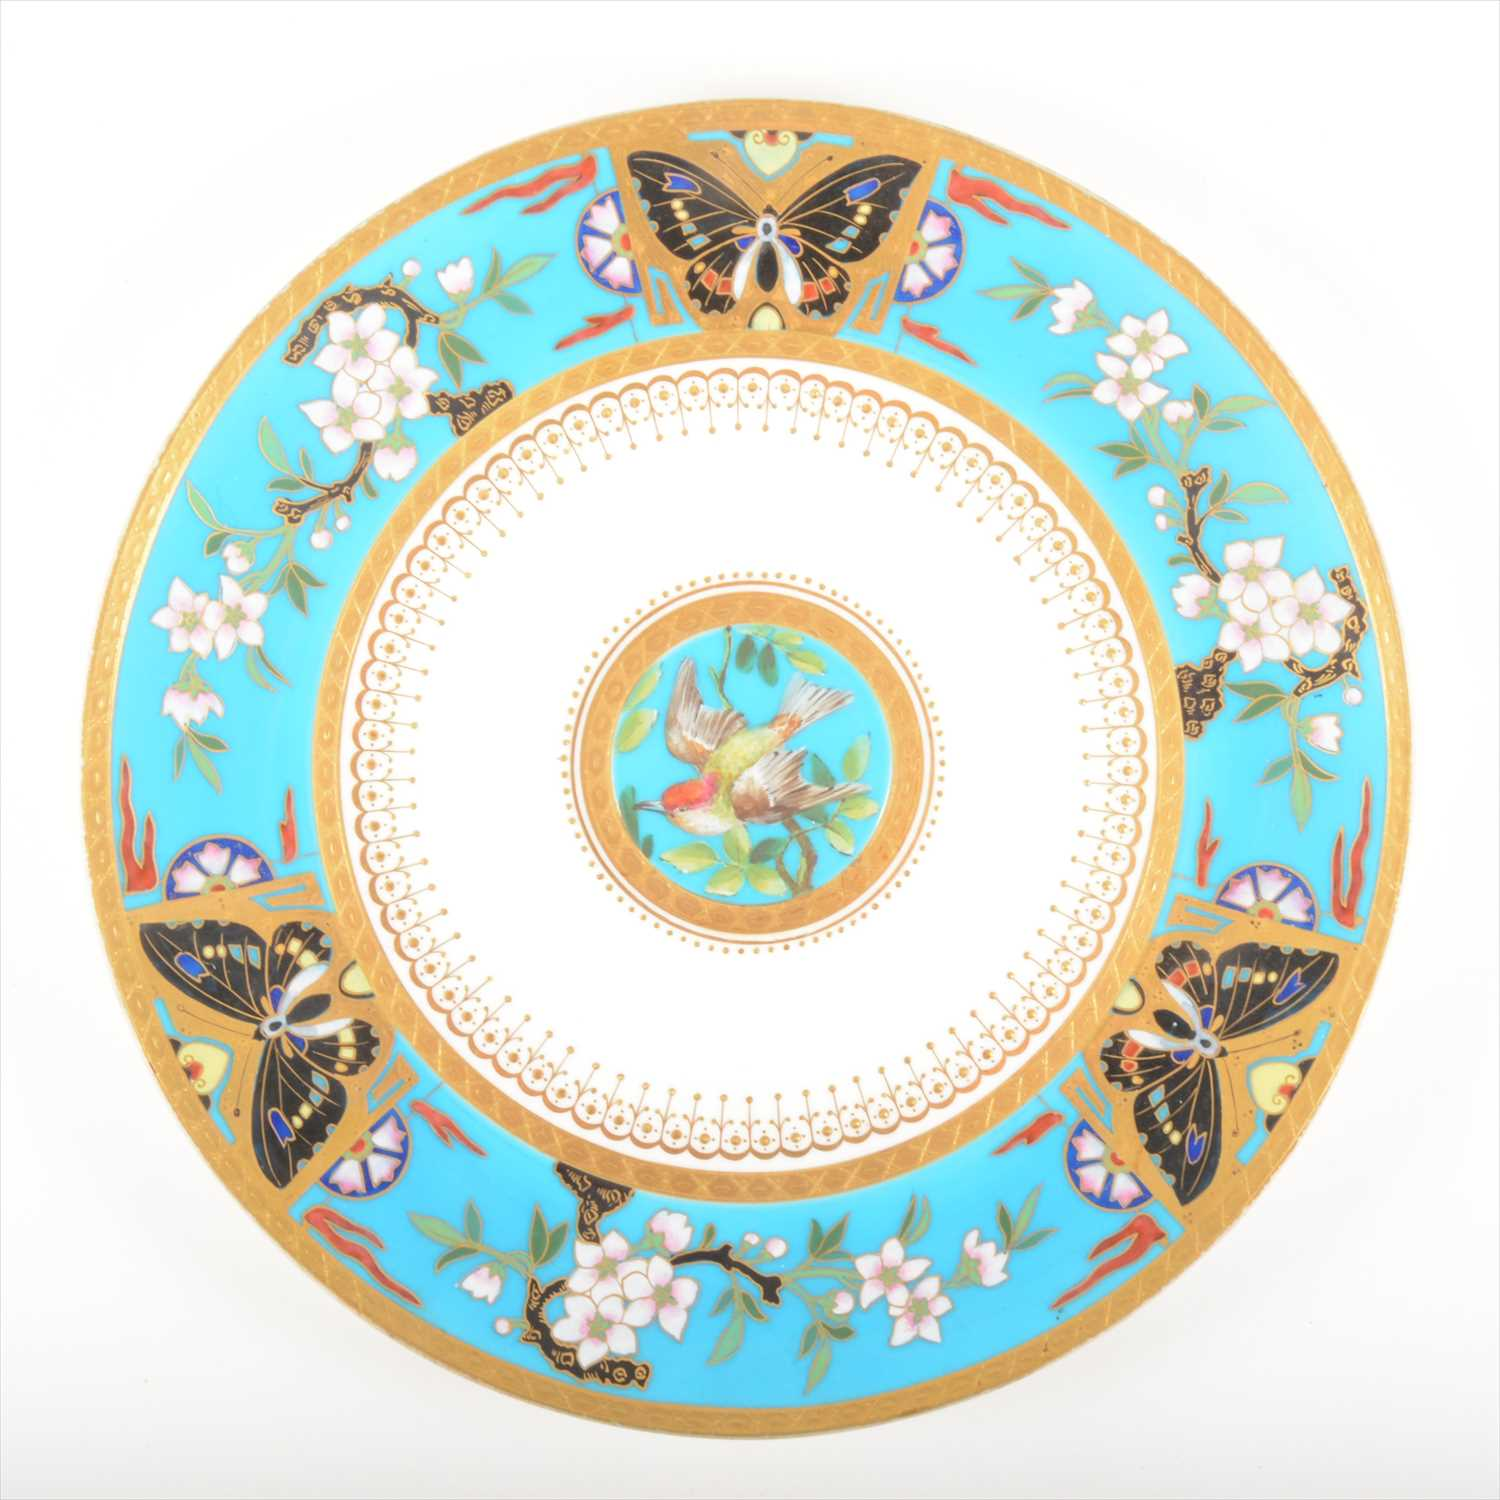 7 - An Aesthetic Movement cabinet plate, attributed to Christopher Dresser for Minton, 1876